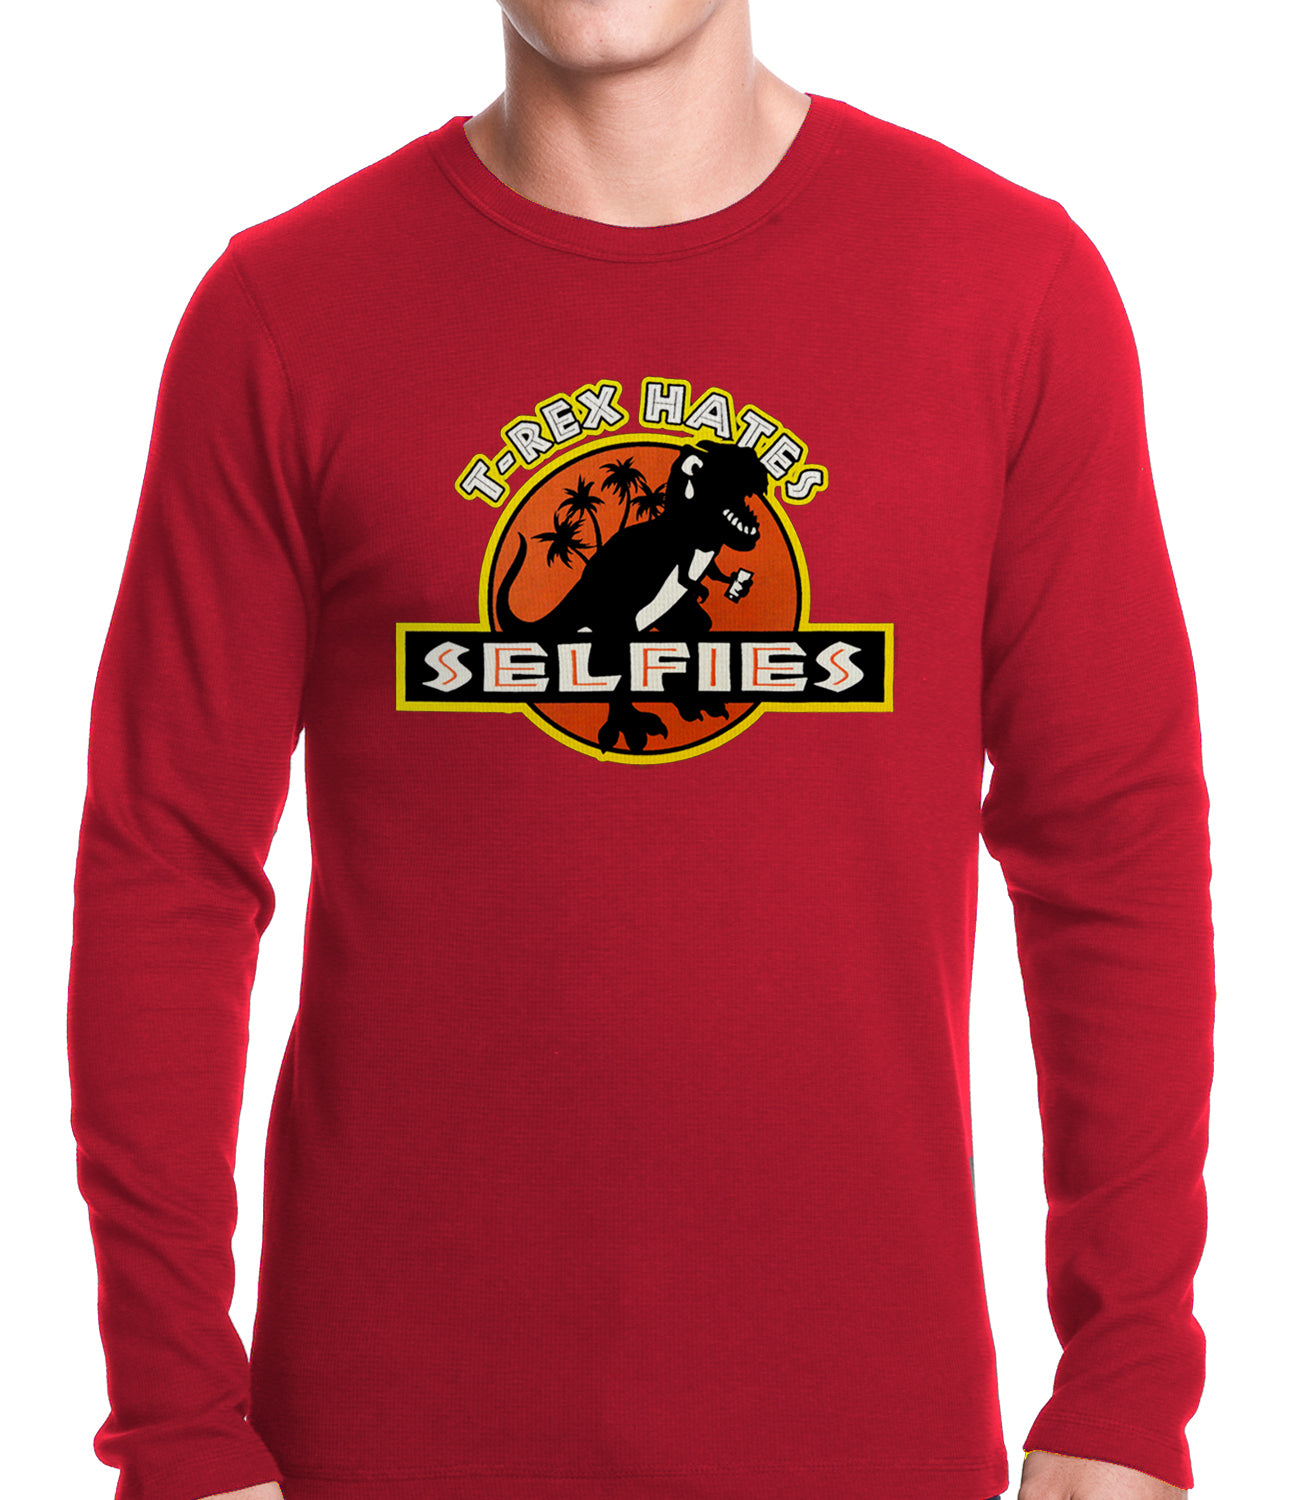 T-Rex Hates Selfies Funny Thermal Shirt